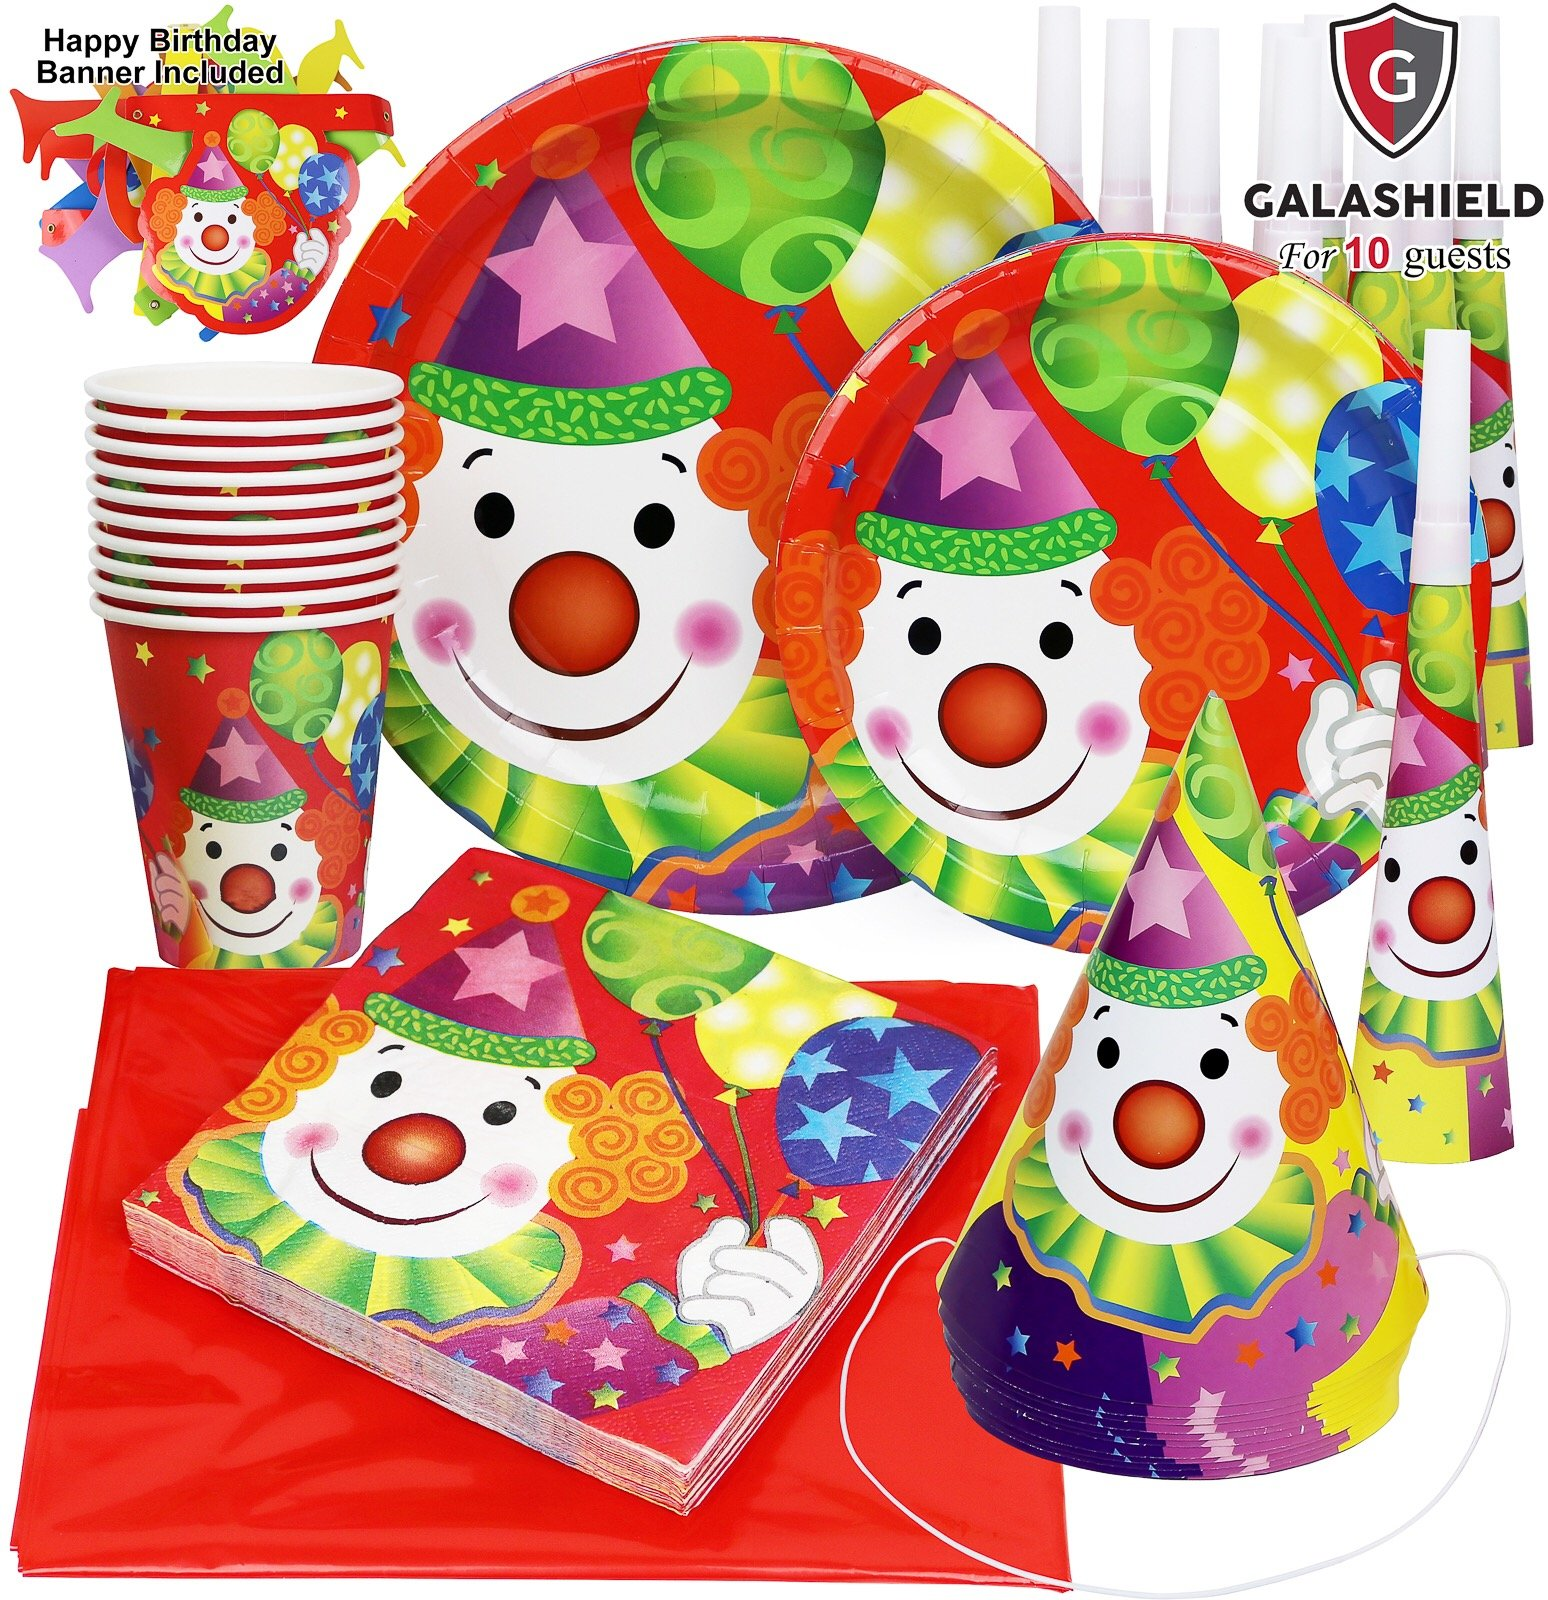 Galashield Birthday Party Plates Supplies Set for 10 includes Disposable Cups Napkins Birthday Hats Horns Tablecloth and Banner by Galashield